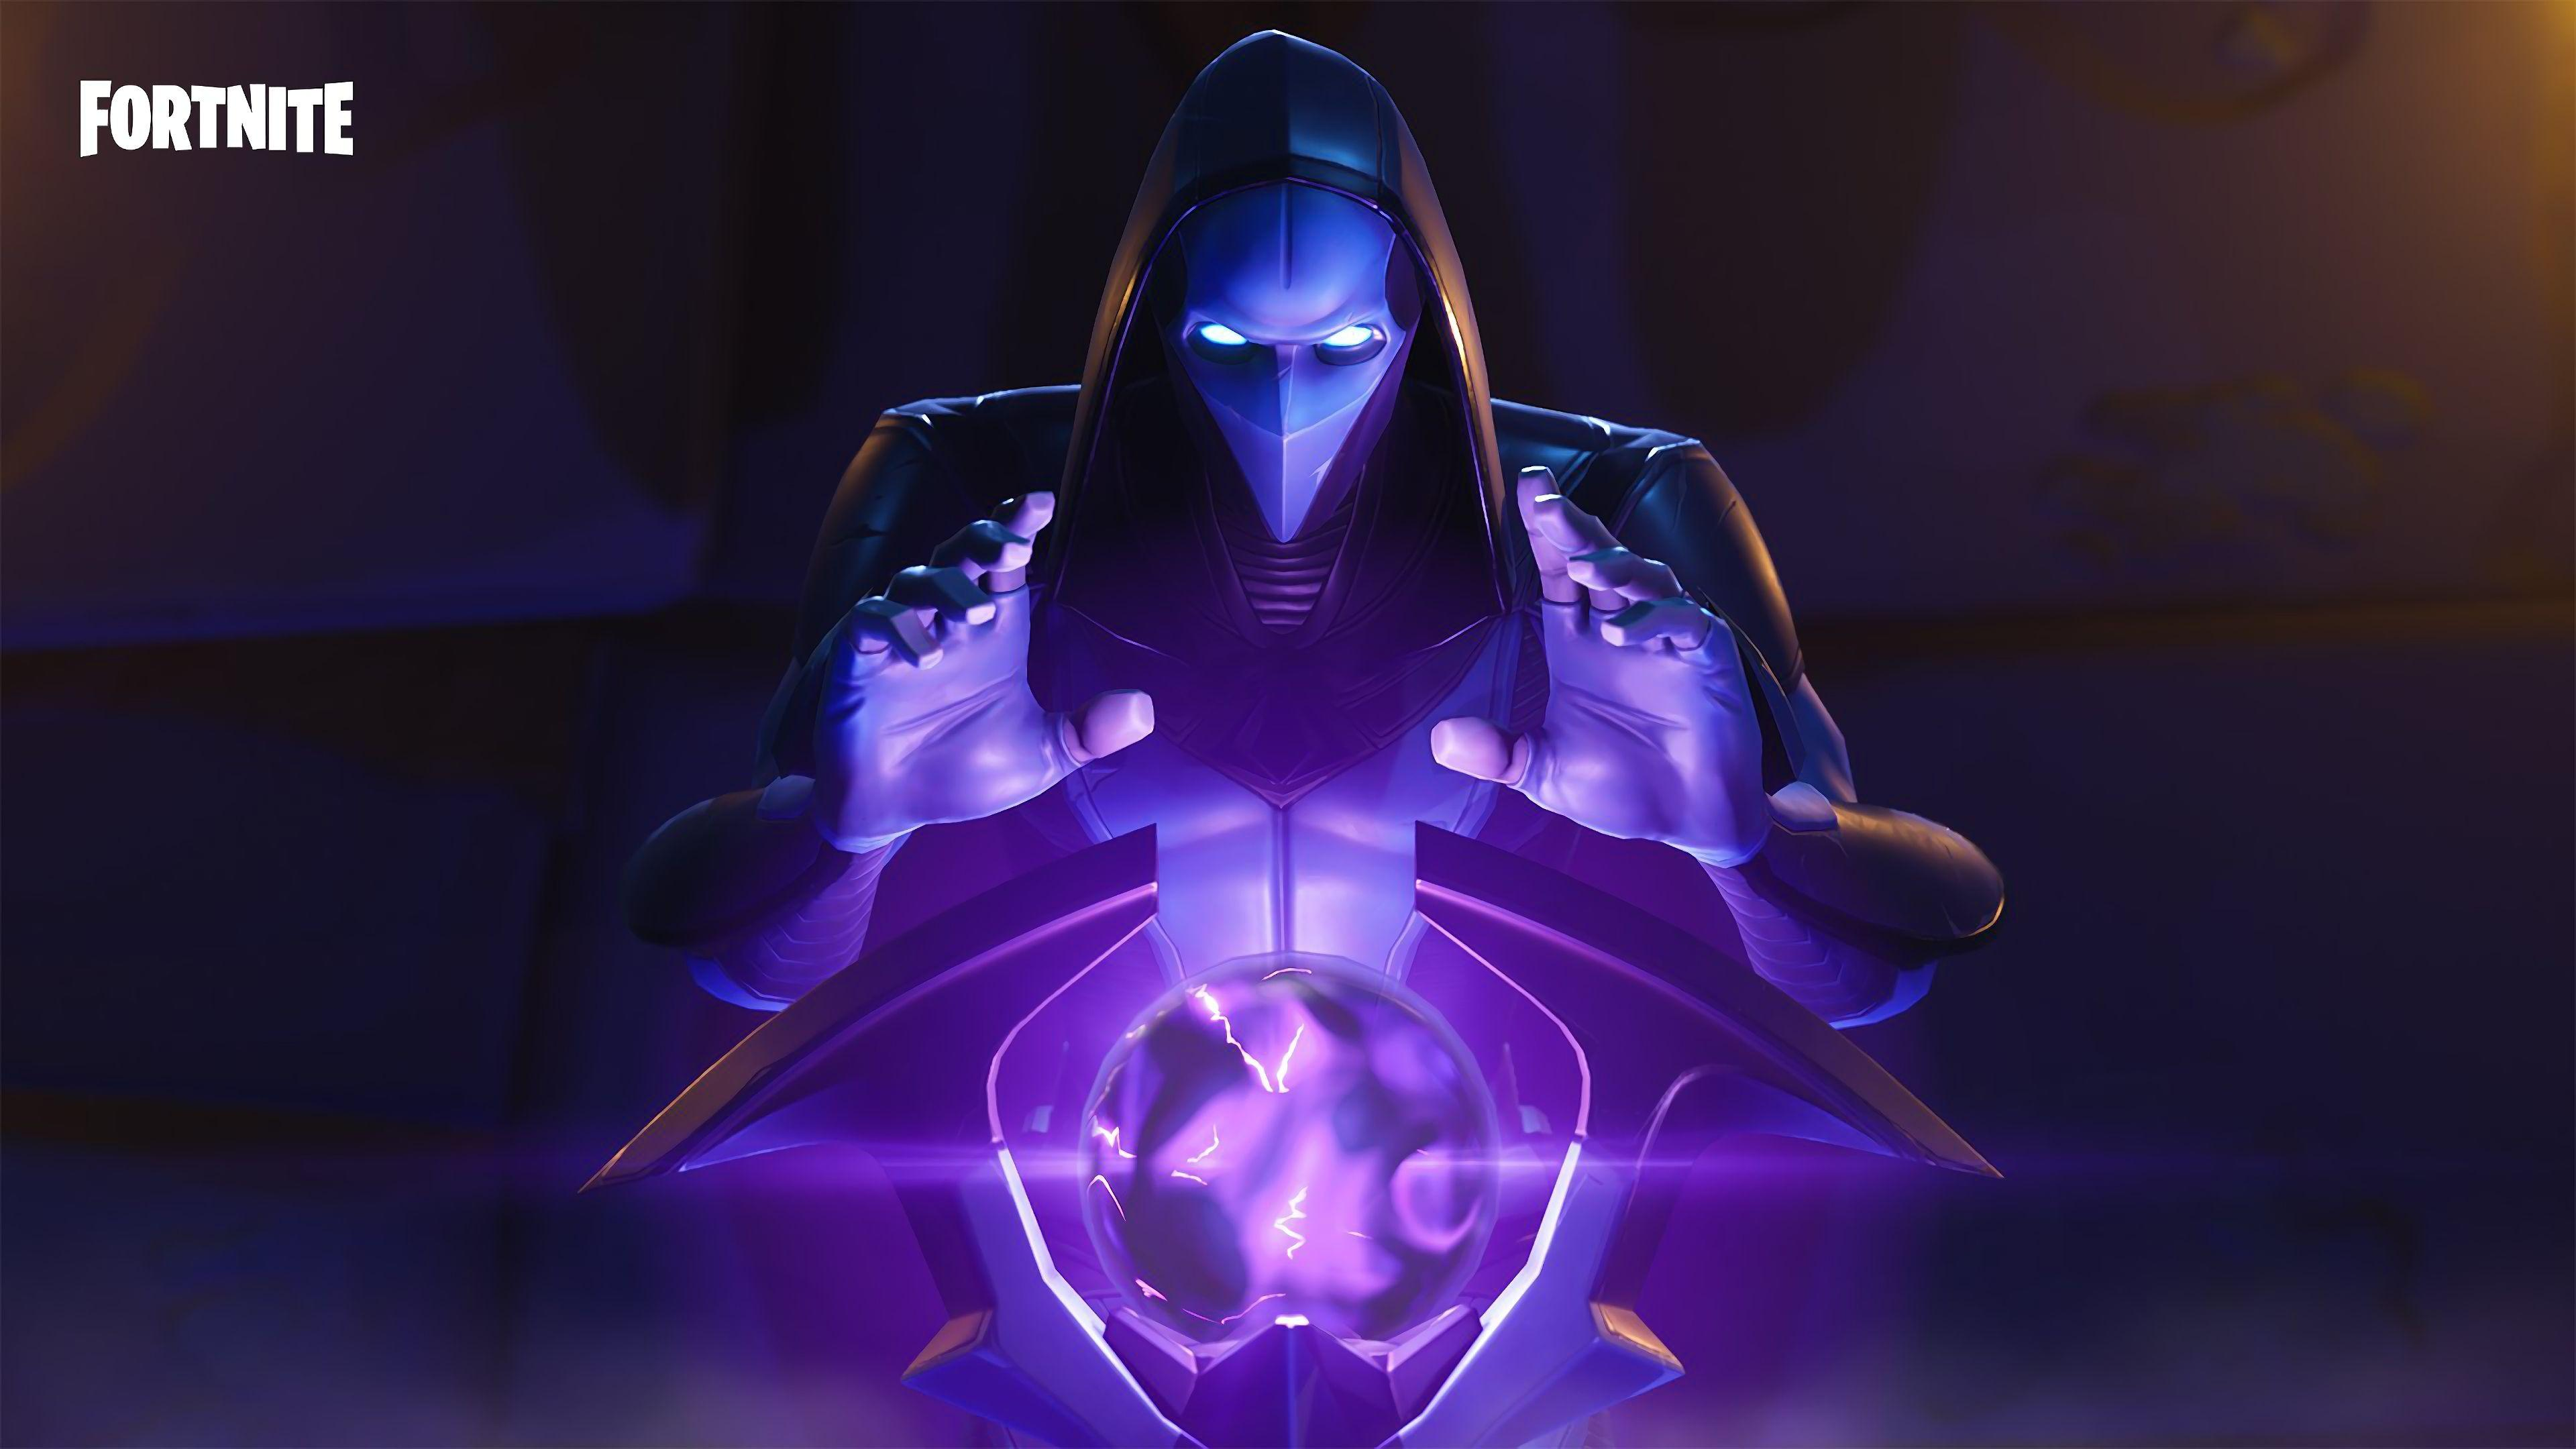 Omen Fortnite Battle Royale #4037 Wallpapers And Free Stock Photos .